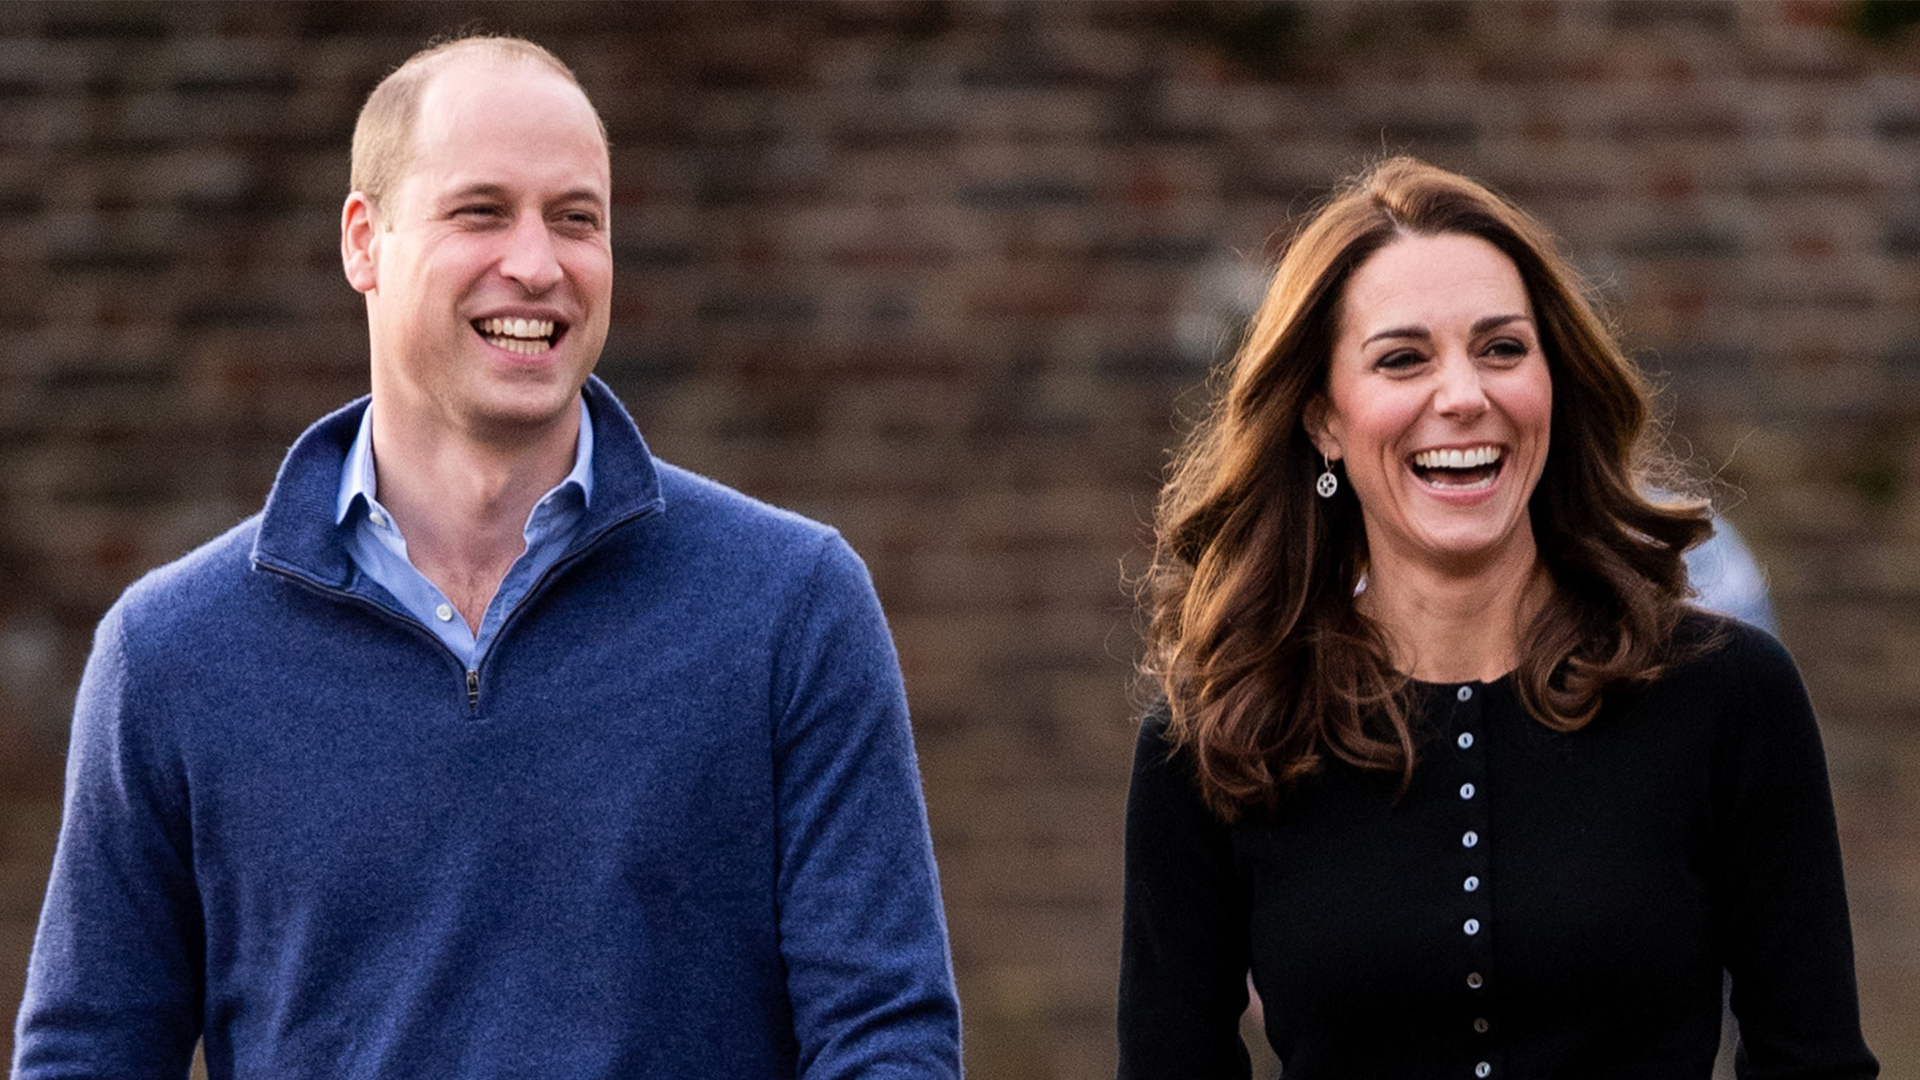 Prince William examines men's mental health in new BBC documentary